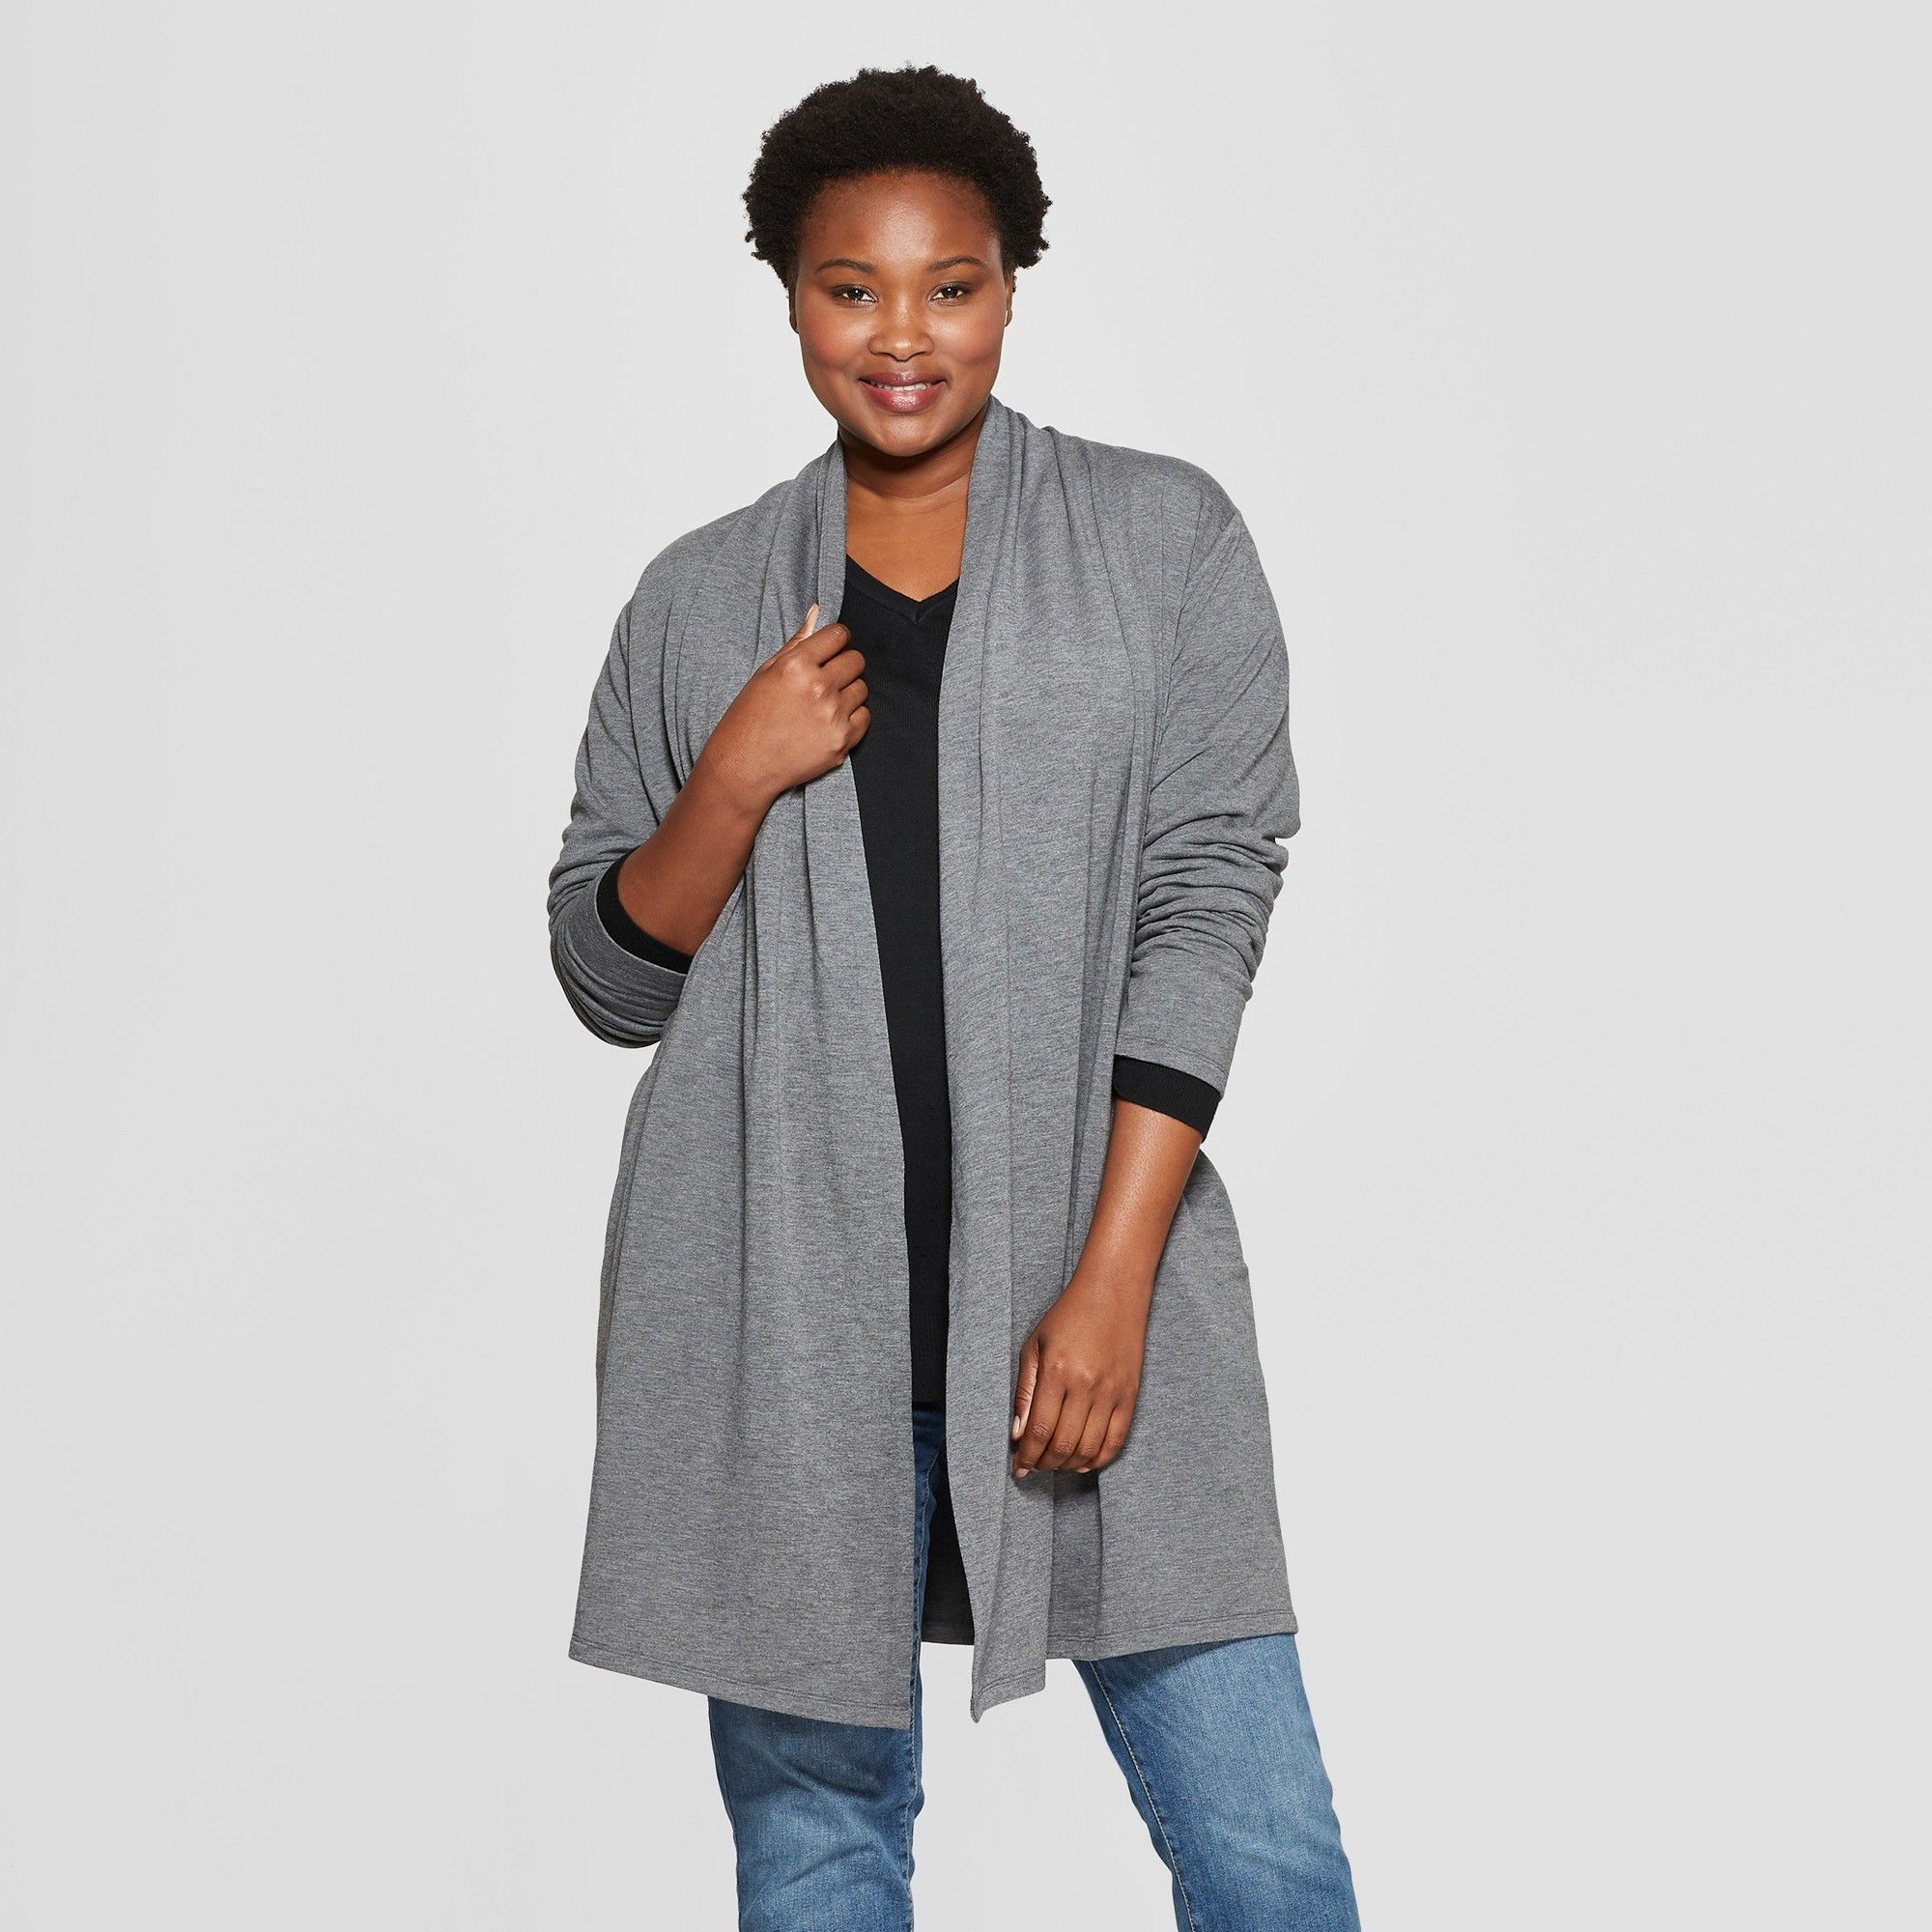 sneakers pretty and colorful a few days away Women's Plus Size Long Sleeve Open Layering Cardigan - Ava ...